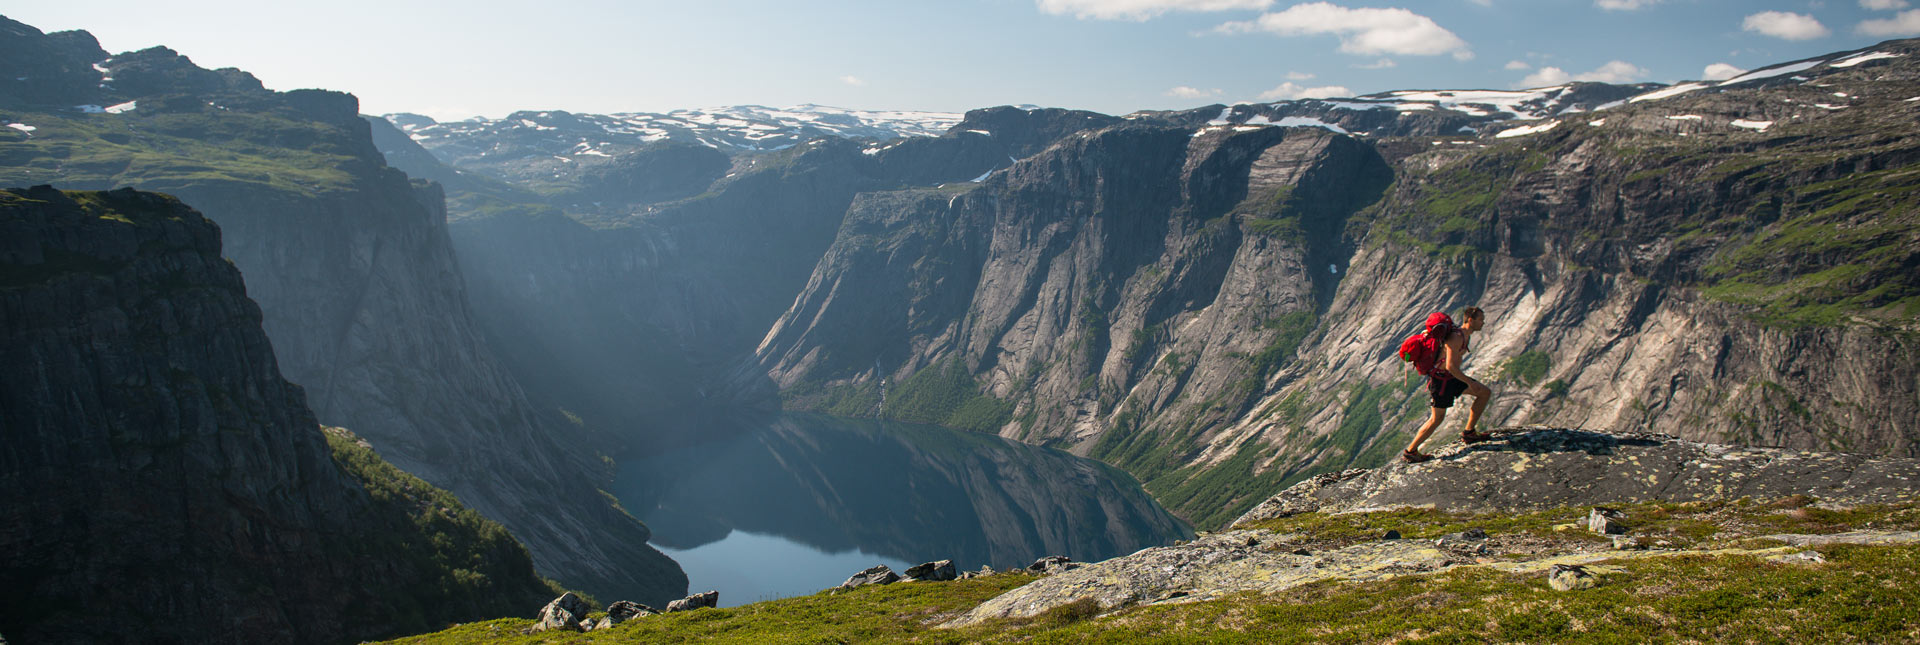 On the way back from Trolltunga